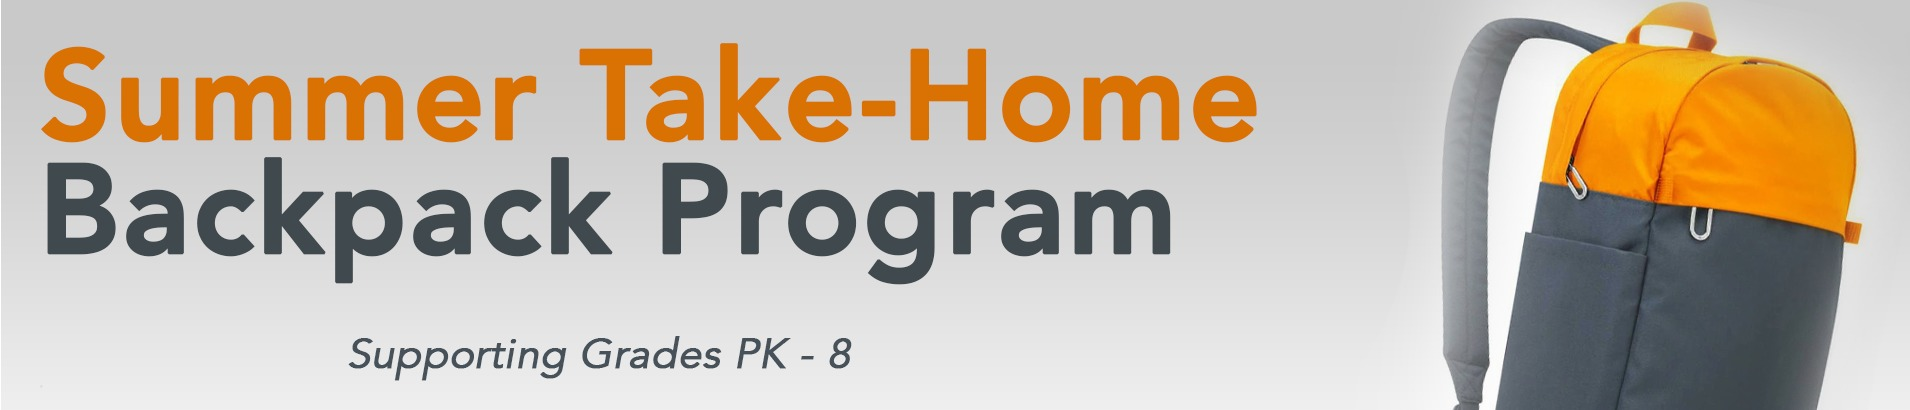 Text reads: Summer Take-Home Backpack program, supporting grades PK-8.